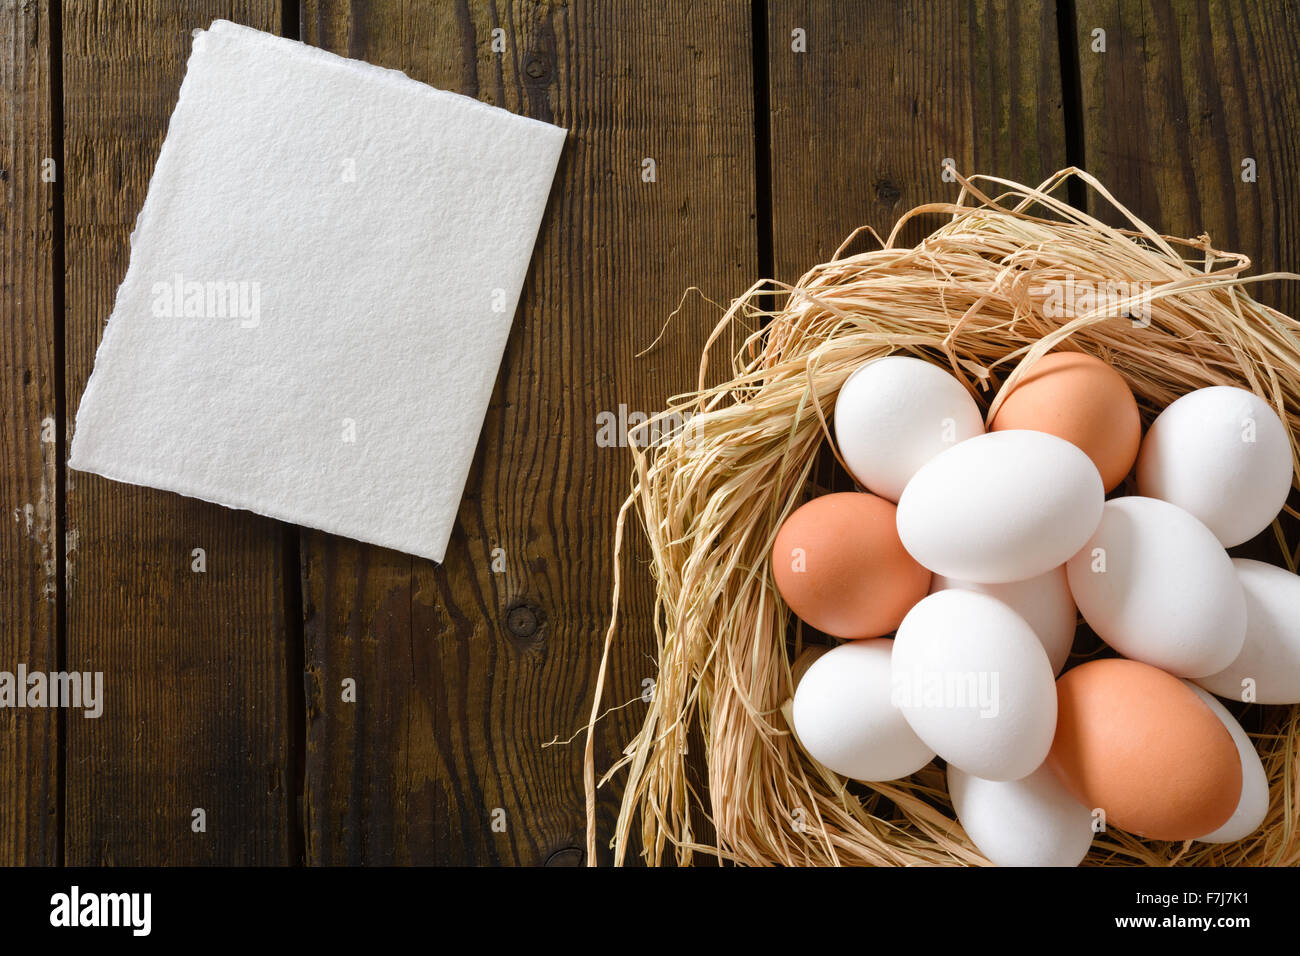 Eggs in the  strawy nest with  hand made paper card on the vintage wooden board - Stock Image